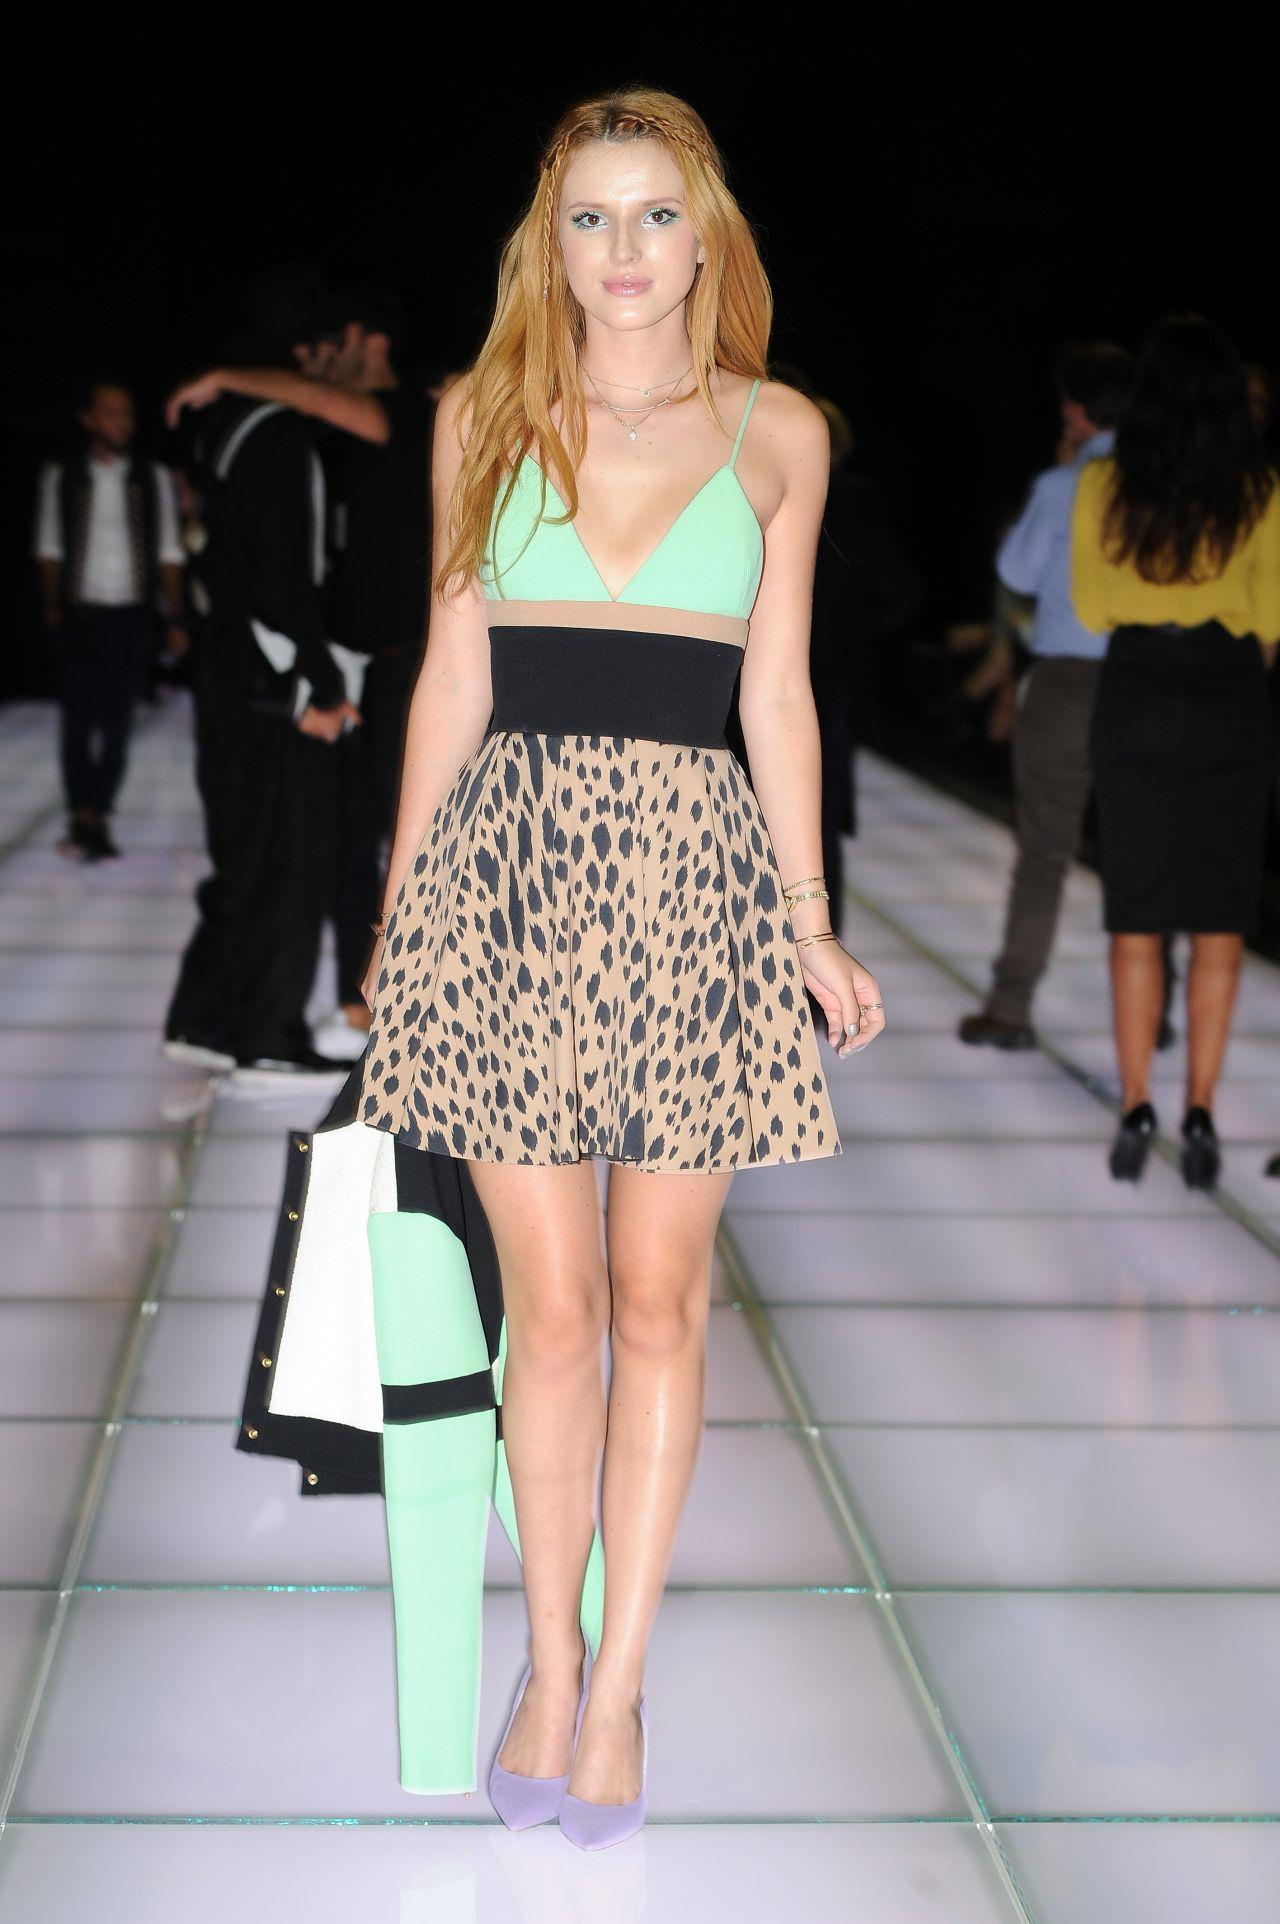 Bella Thorne In Italy Fausto Puglisi Show In Milan